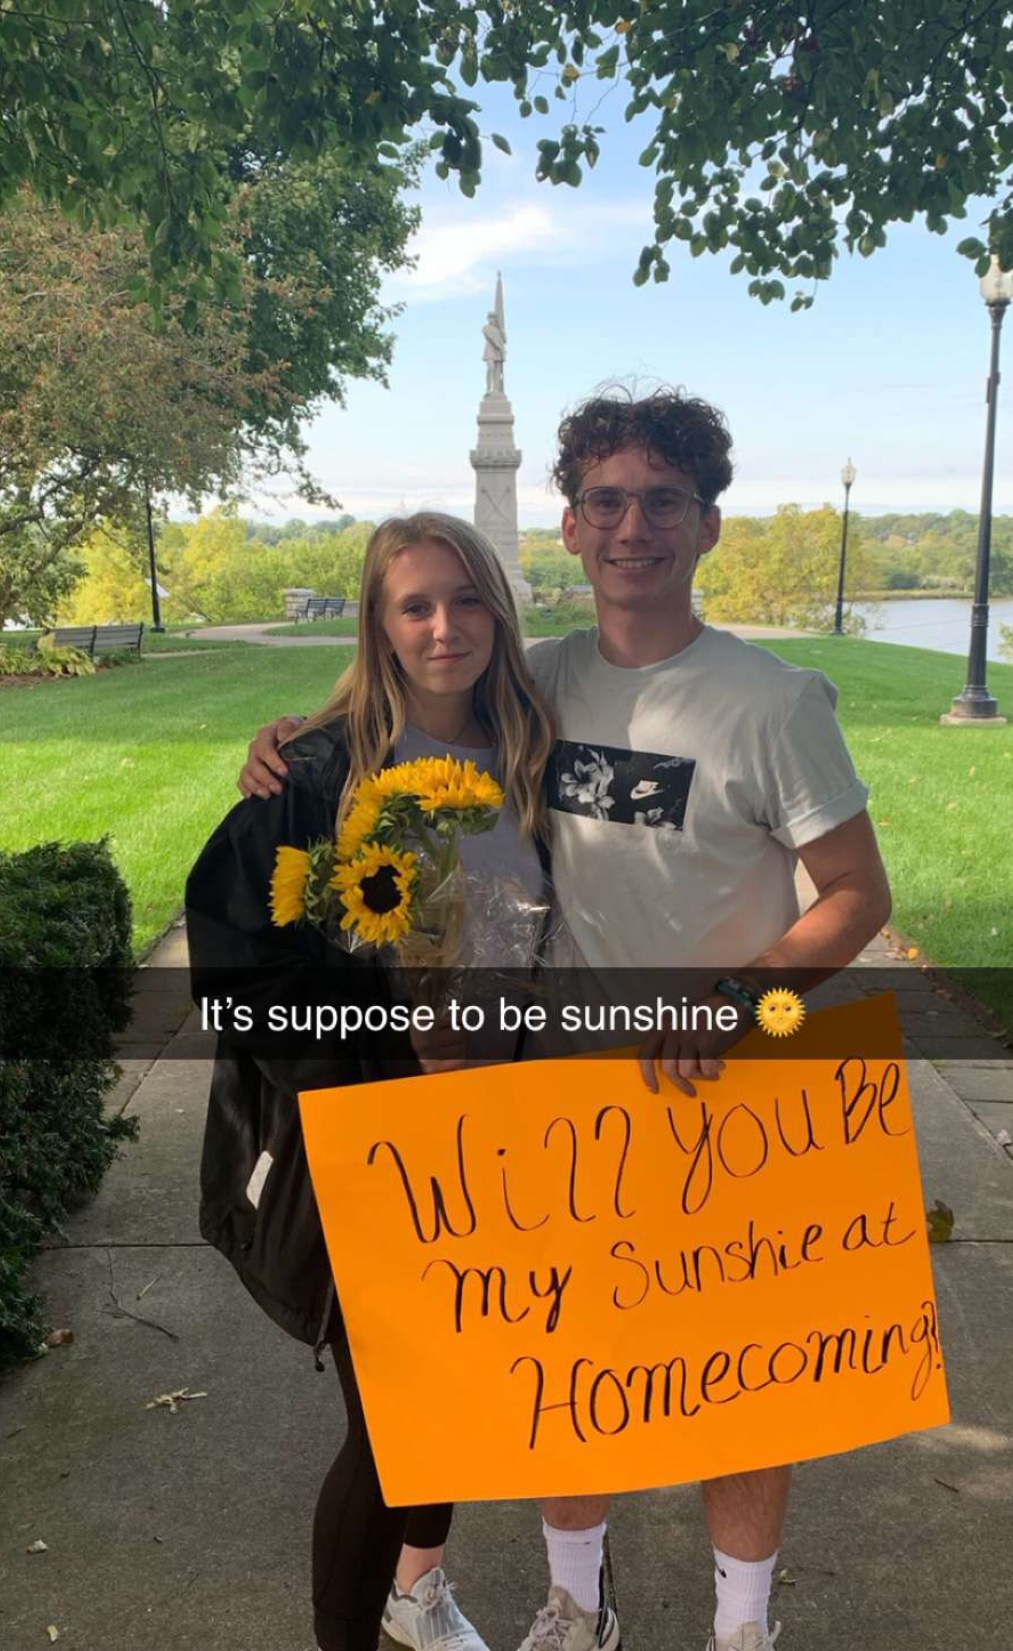 """Will you be my sunshine at Homecoming?"""